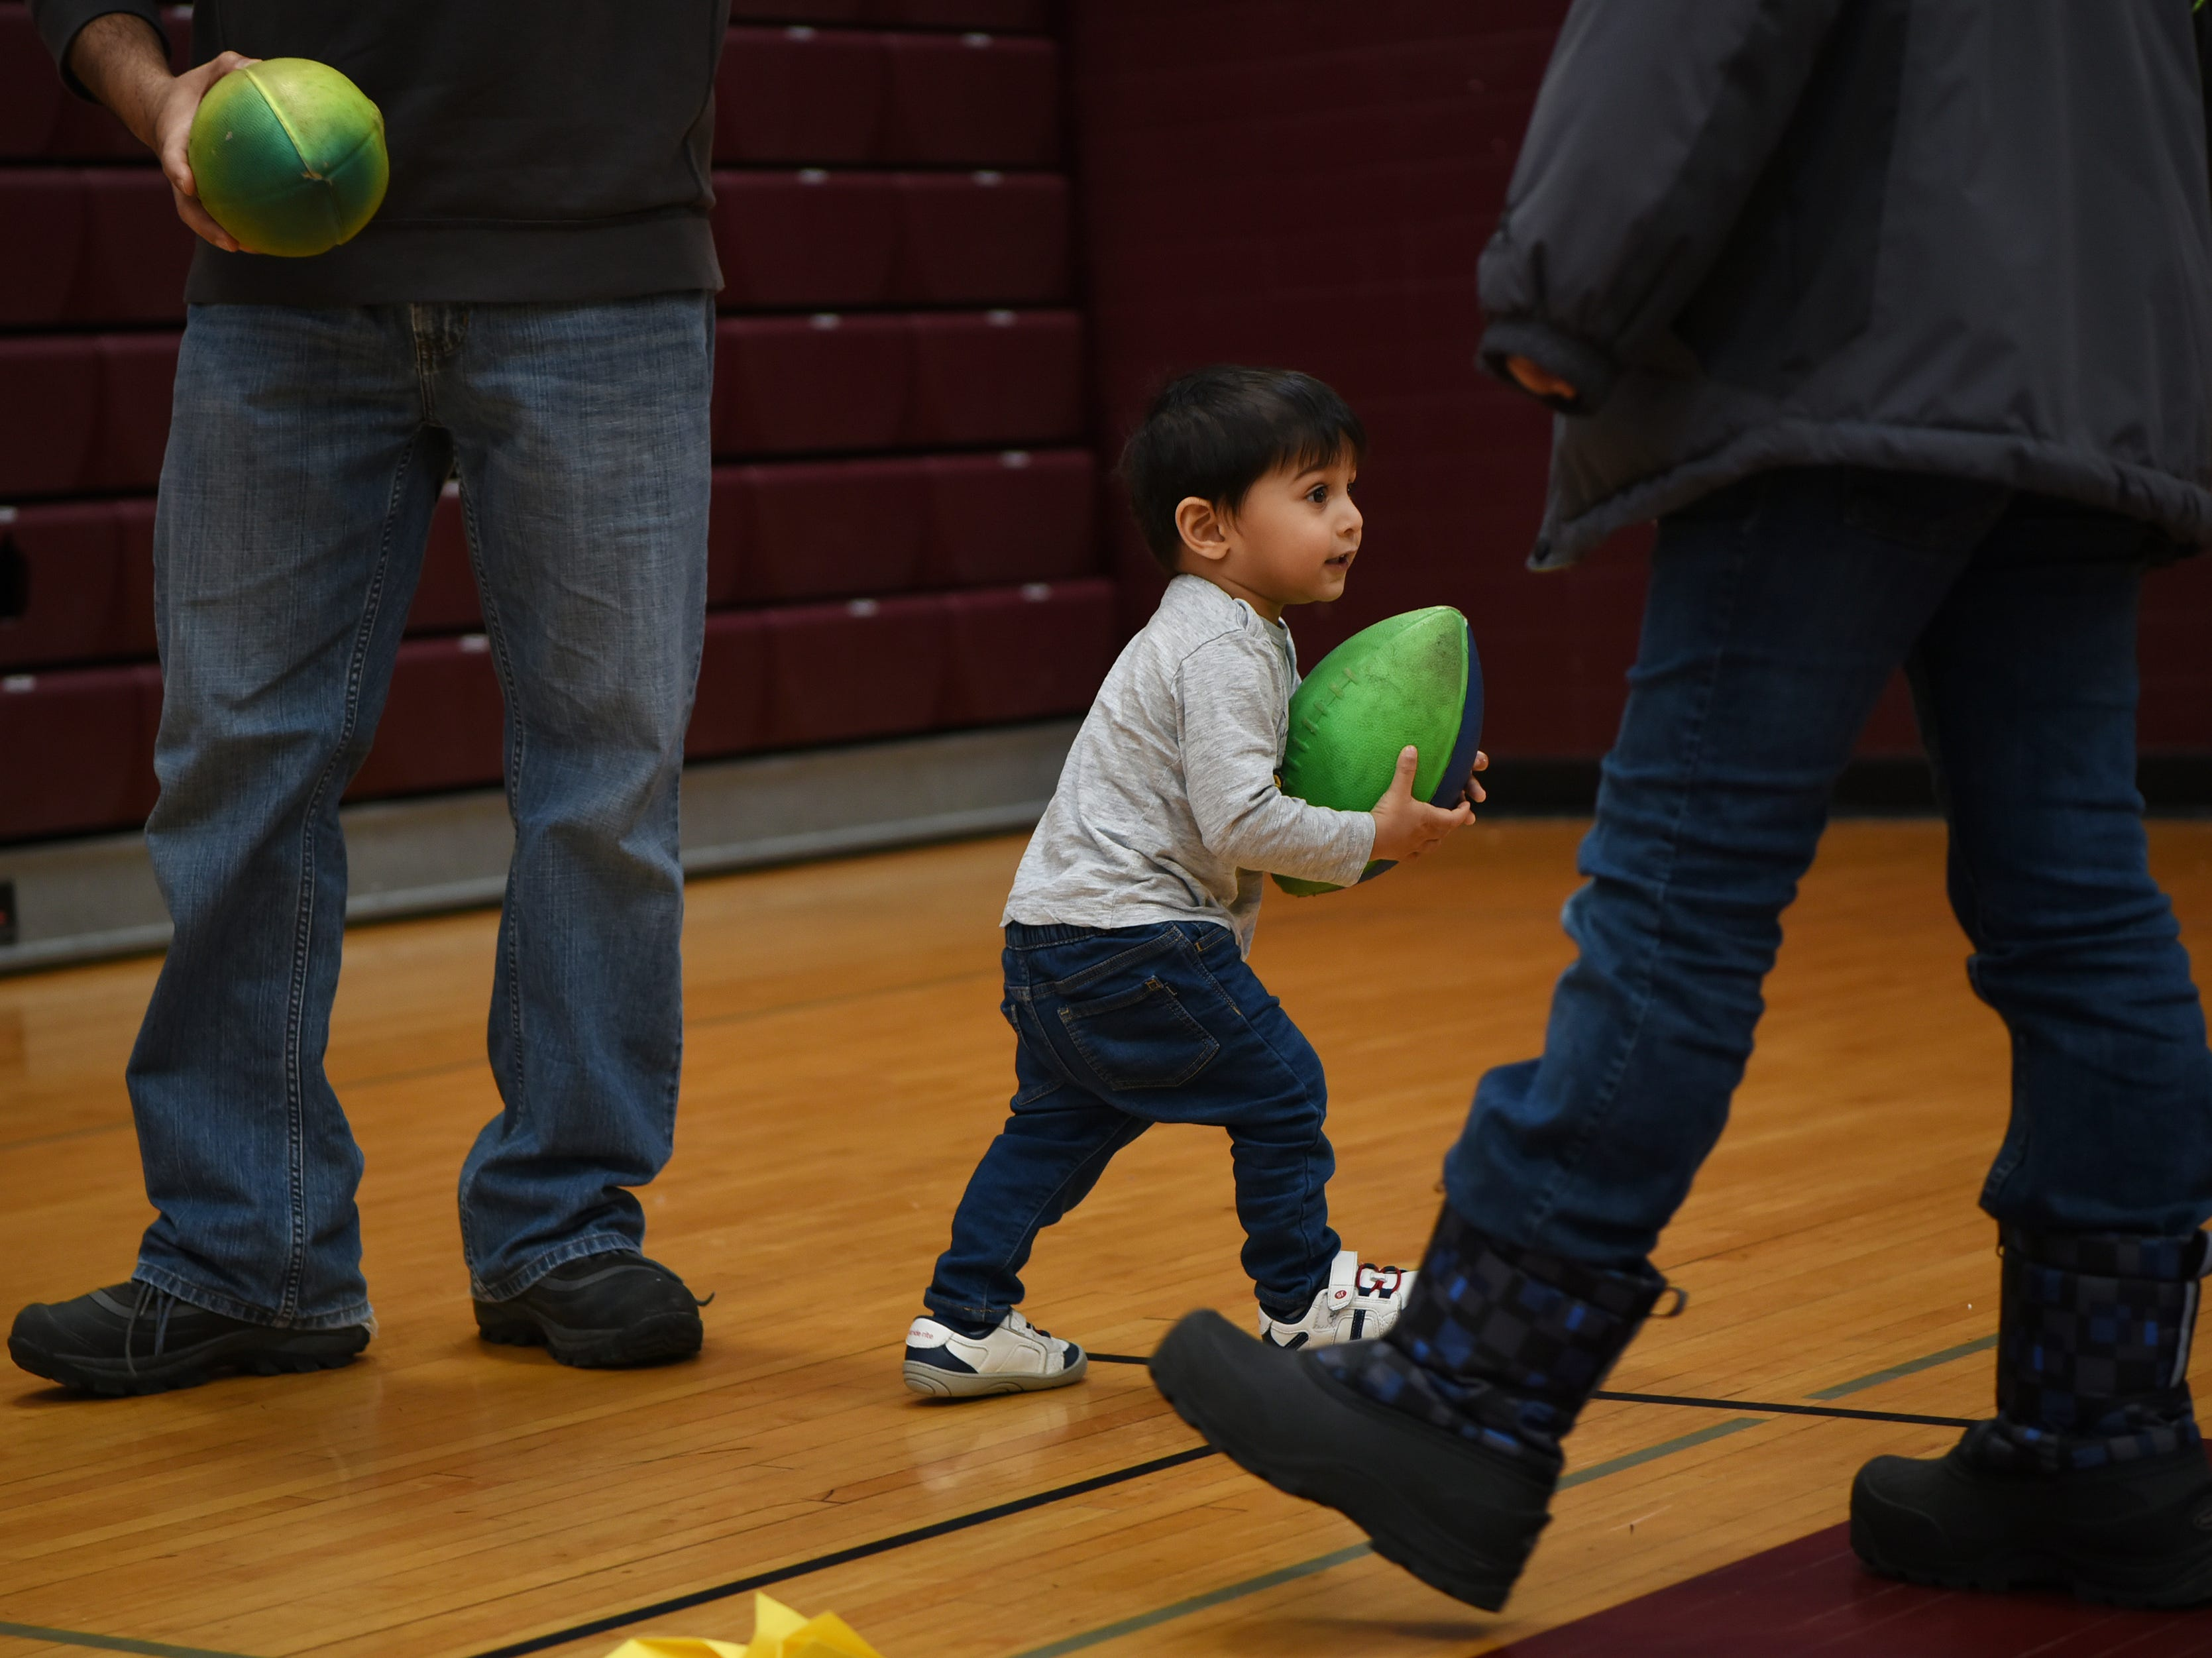 Riaan Shah, 18 months, plays with a footbal provided by Professor Tennis at the Super Science Saturday held at Ridgewood High School in Ridgewood on Saturday March 2, 2019.